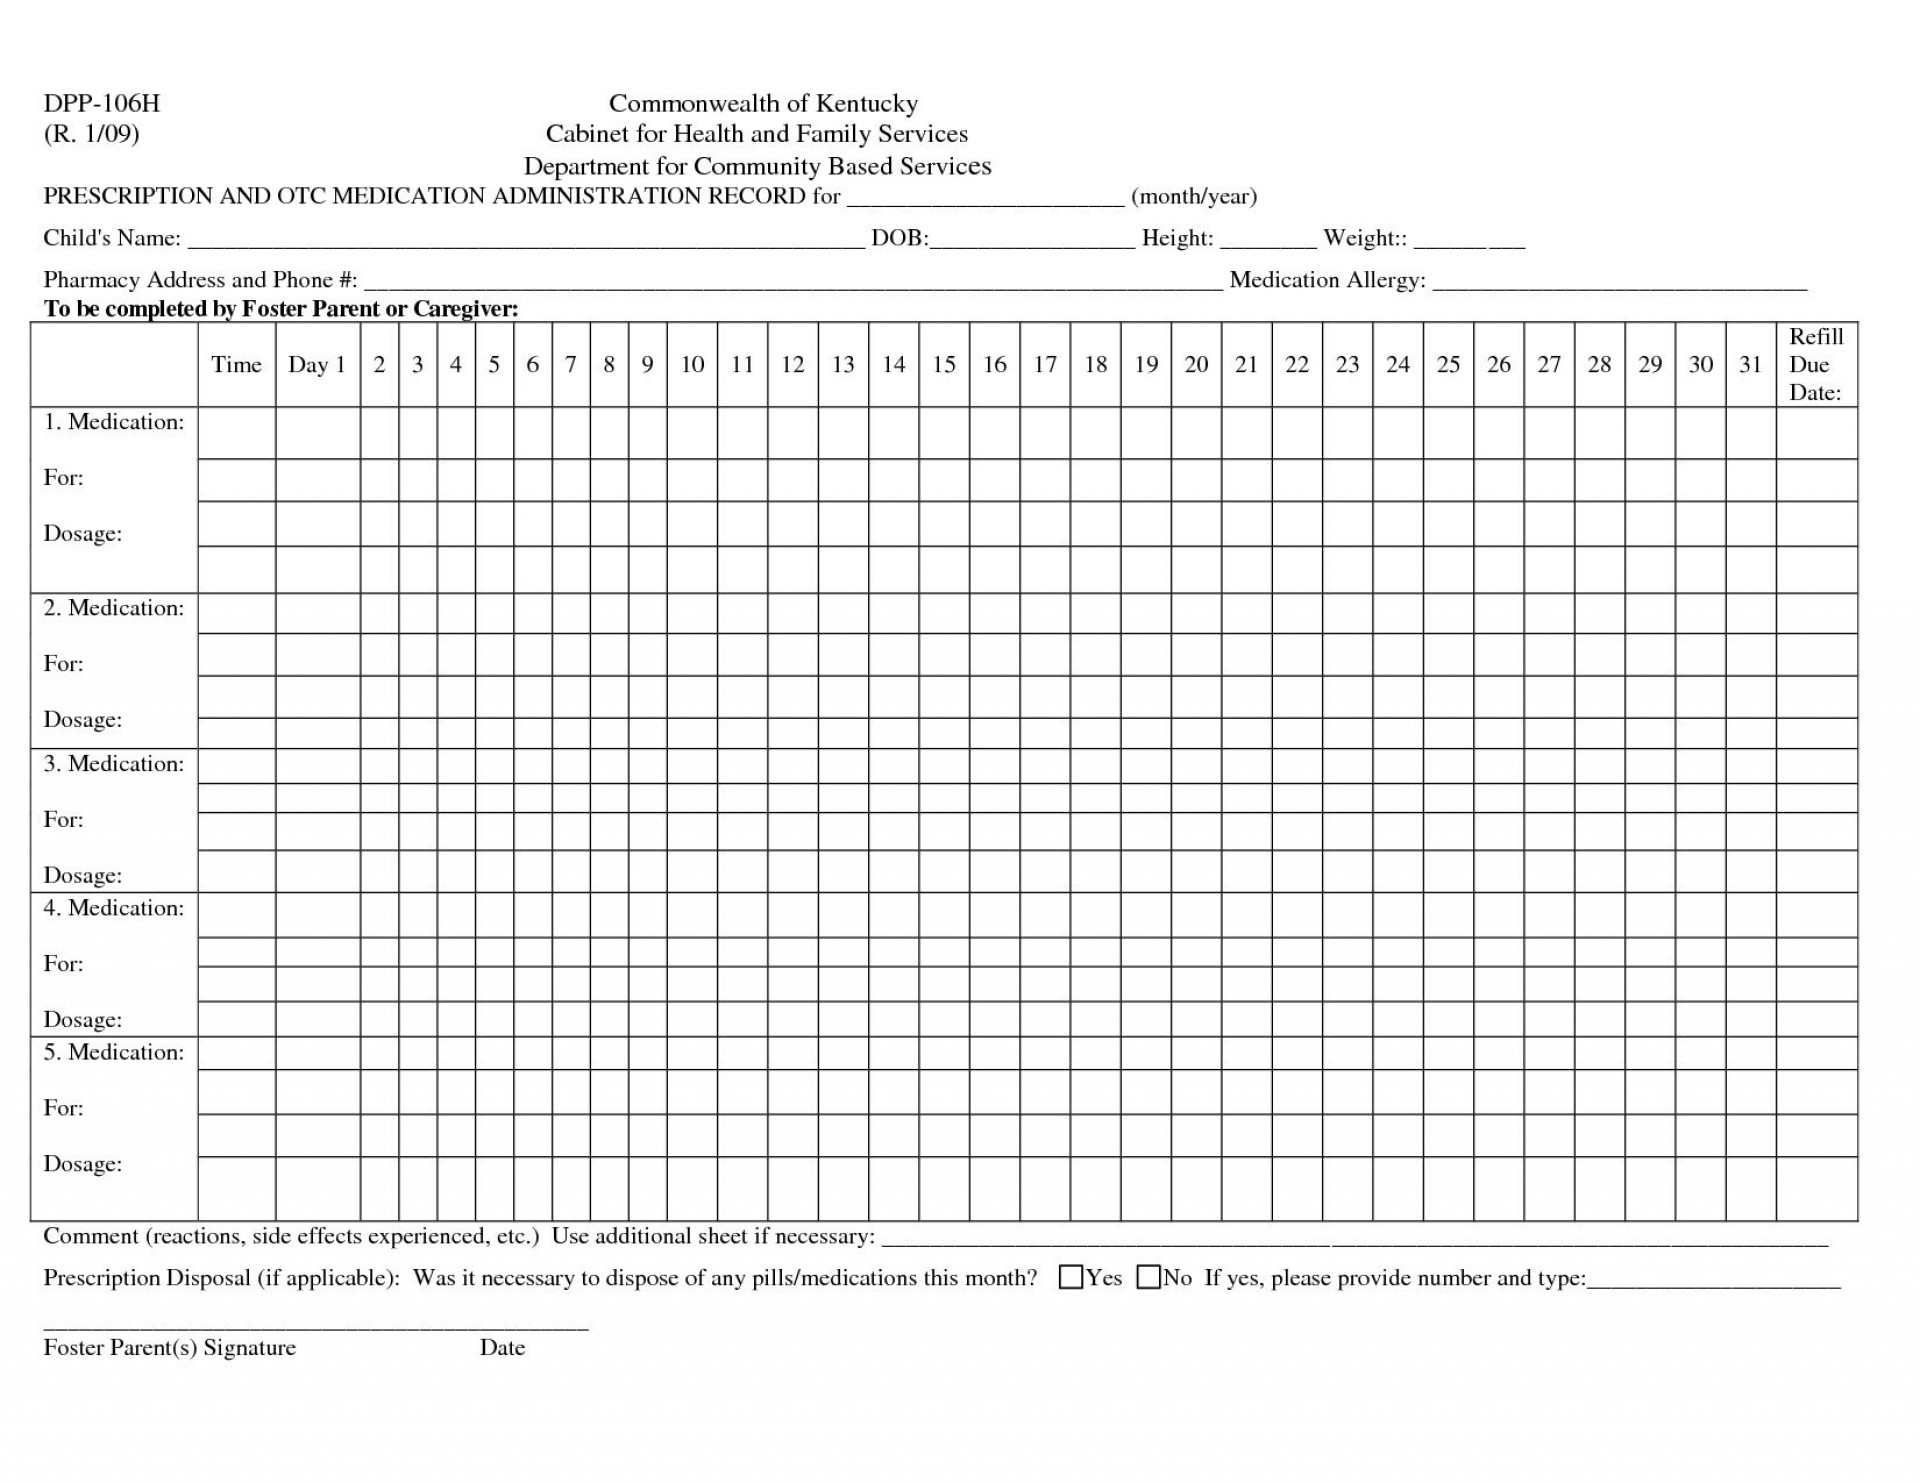 004 Awesome Medication Administration Record Template Photo  Download For Home Use1920